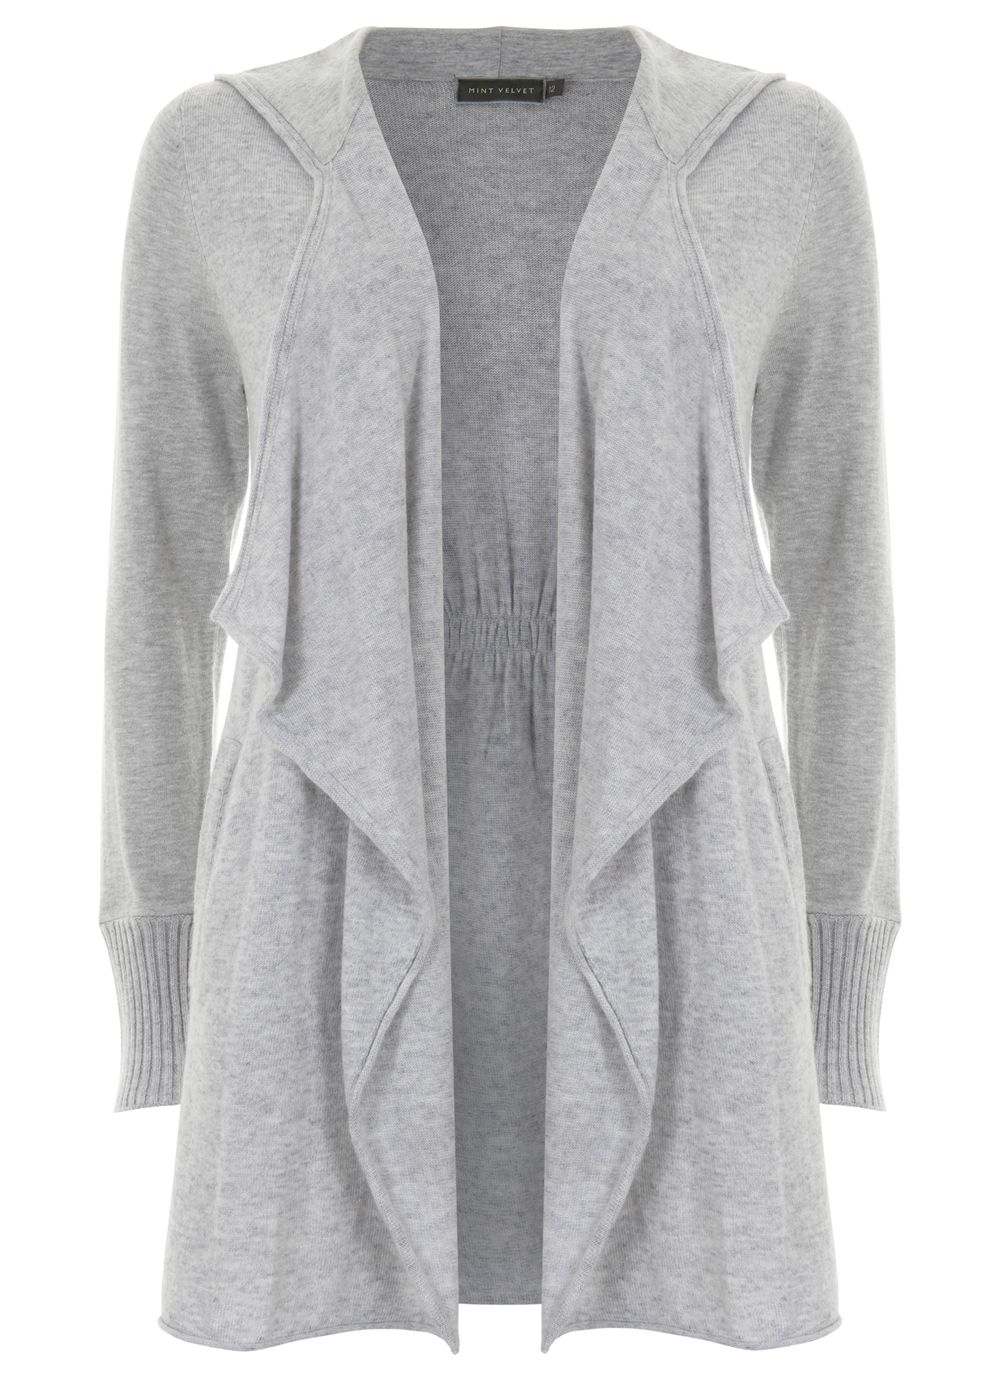 Silver hooded cashmere blend cardigan